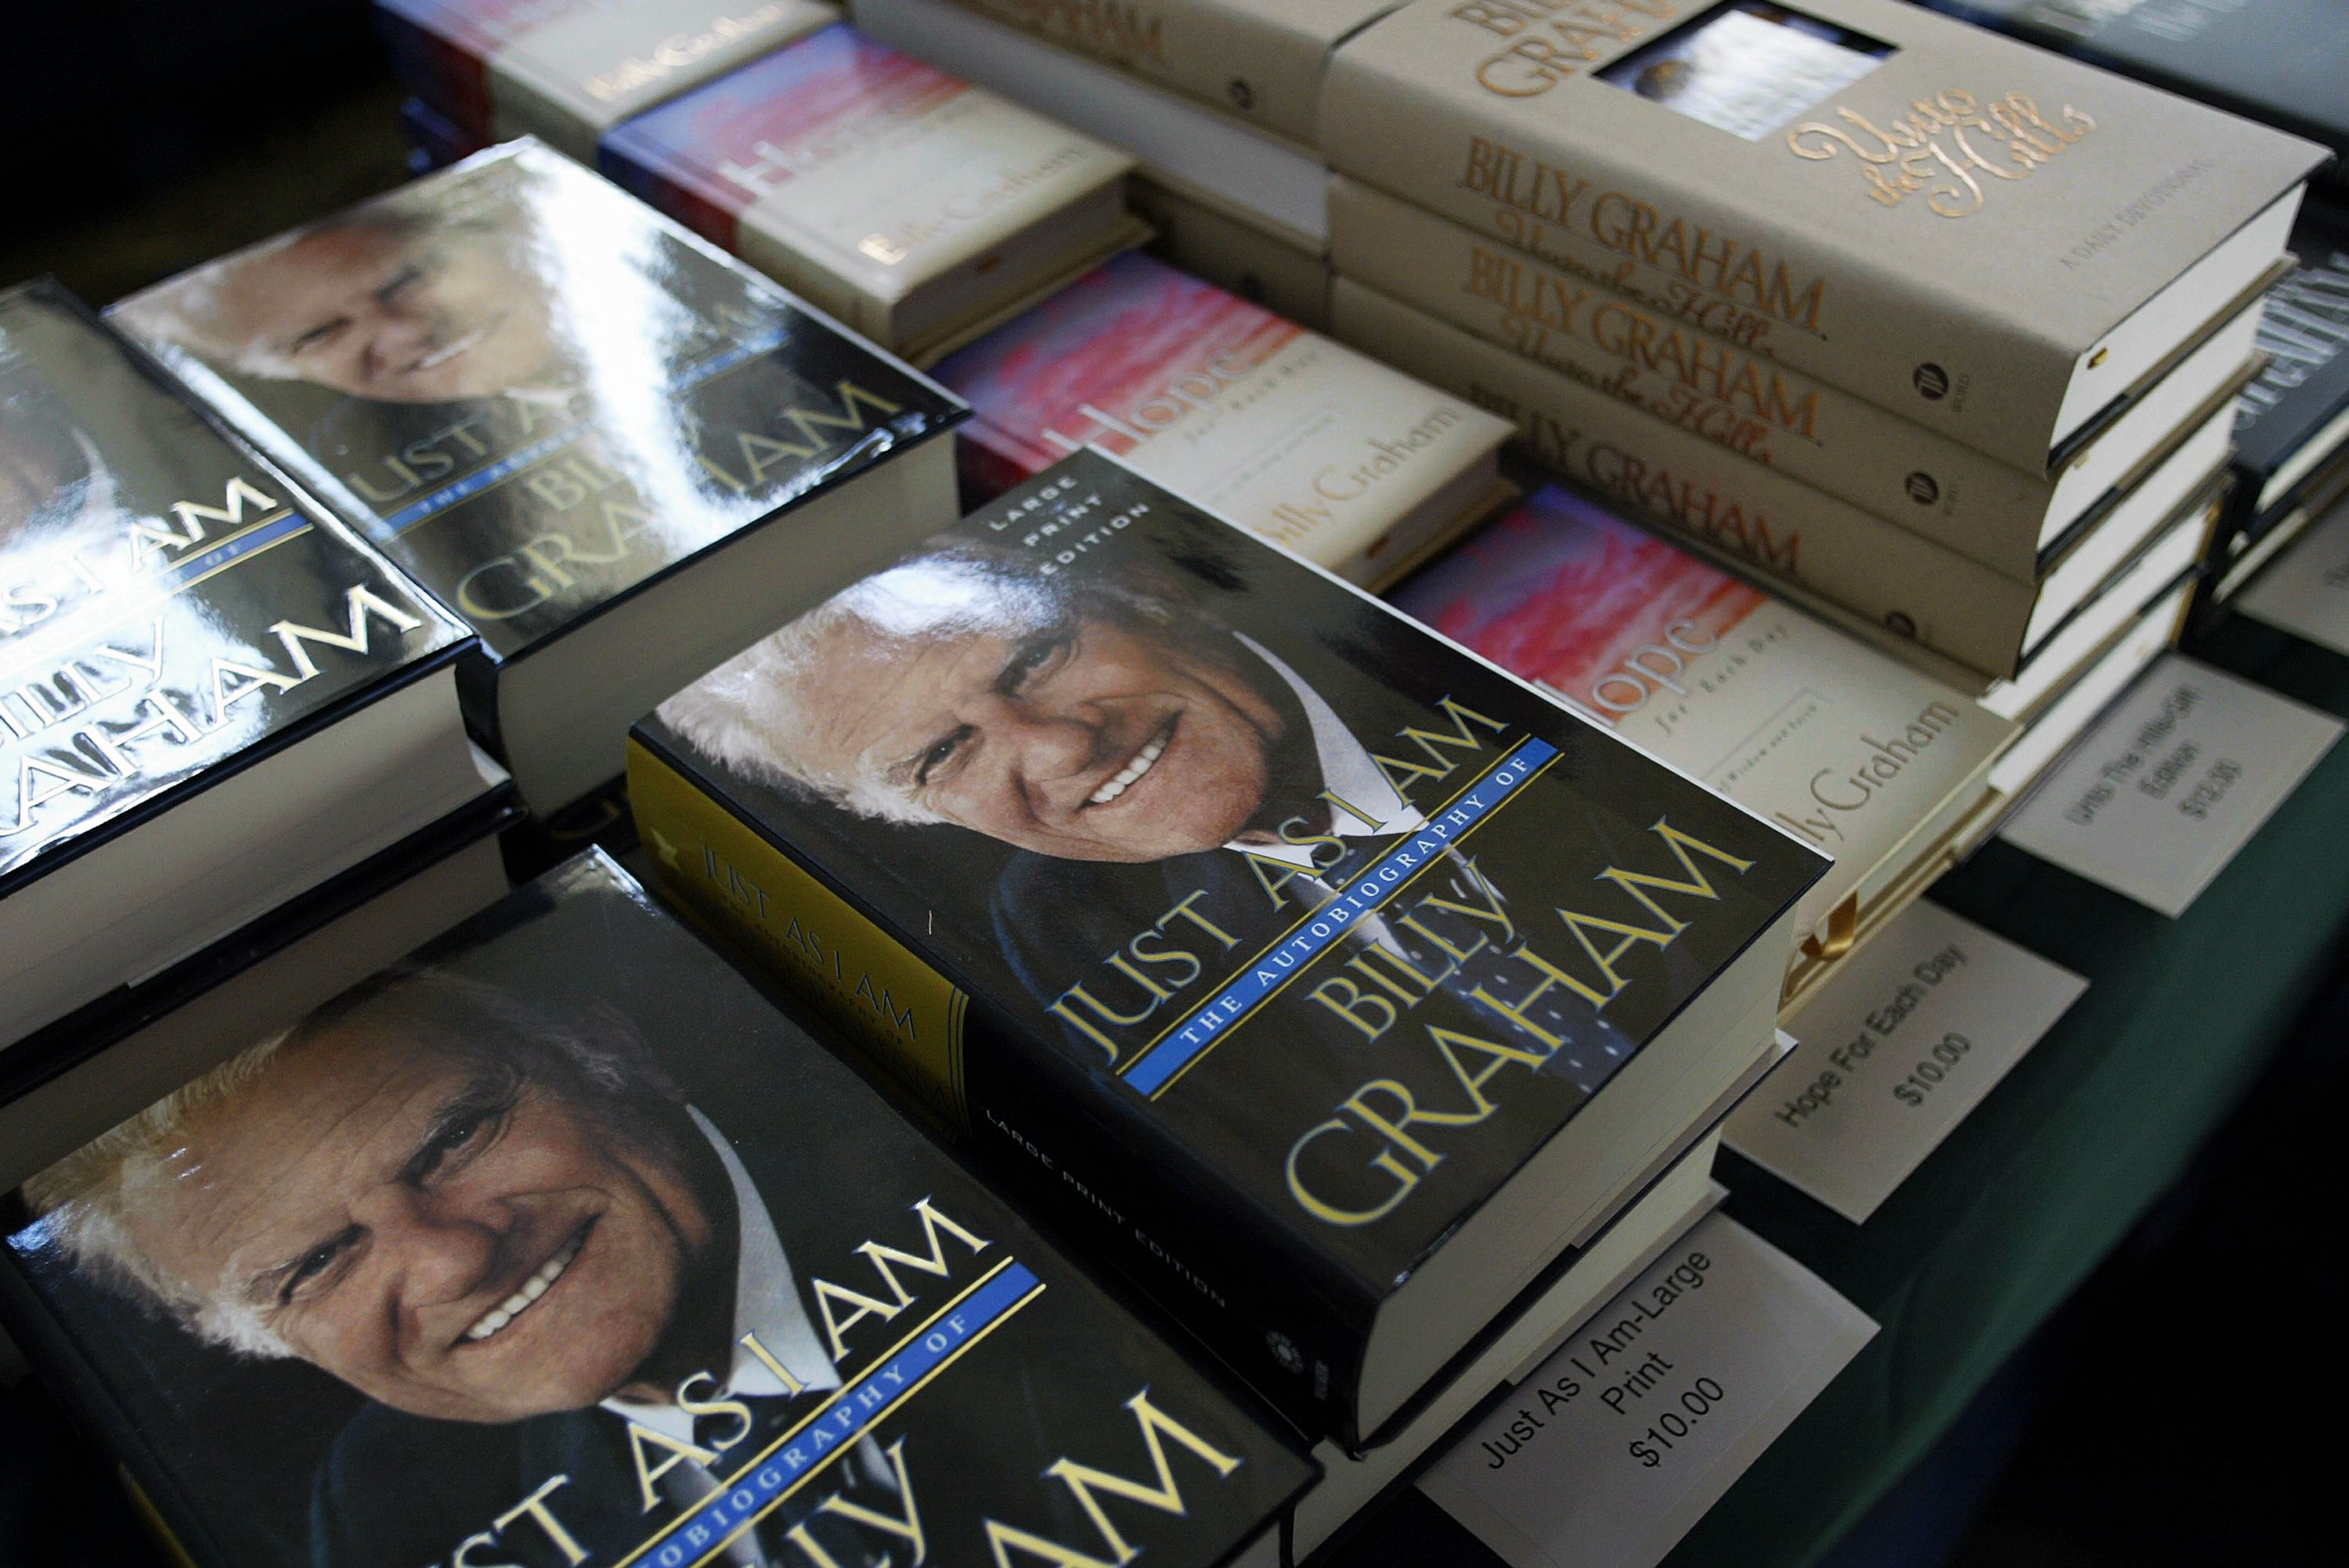 Billy-Graham-Just-As-I-Am-Book